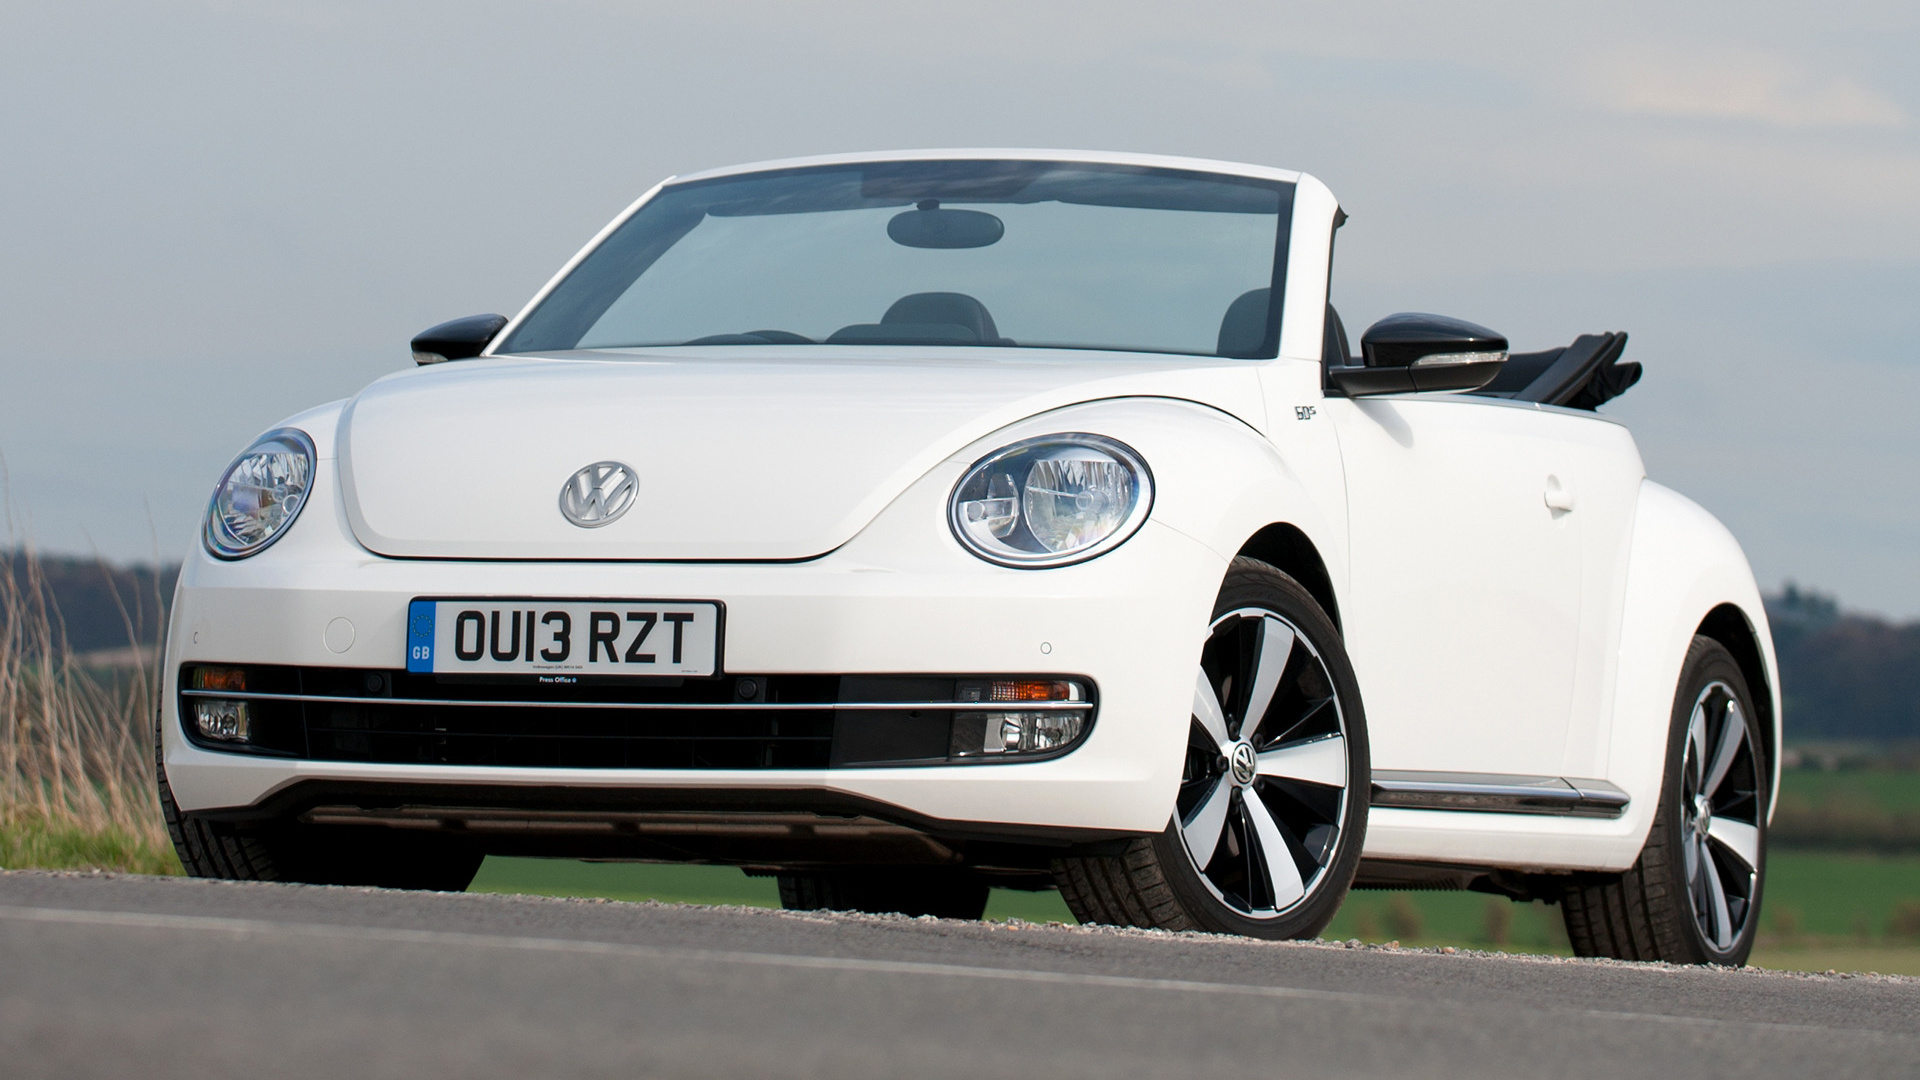 Volkswagen Beetle Cabriolet 60s Edition (2013) UK Wallpapers and HD Images - Car Pixel